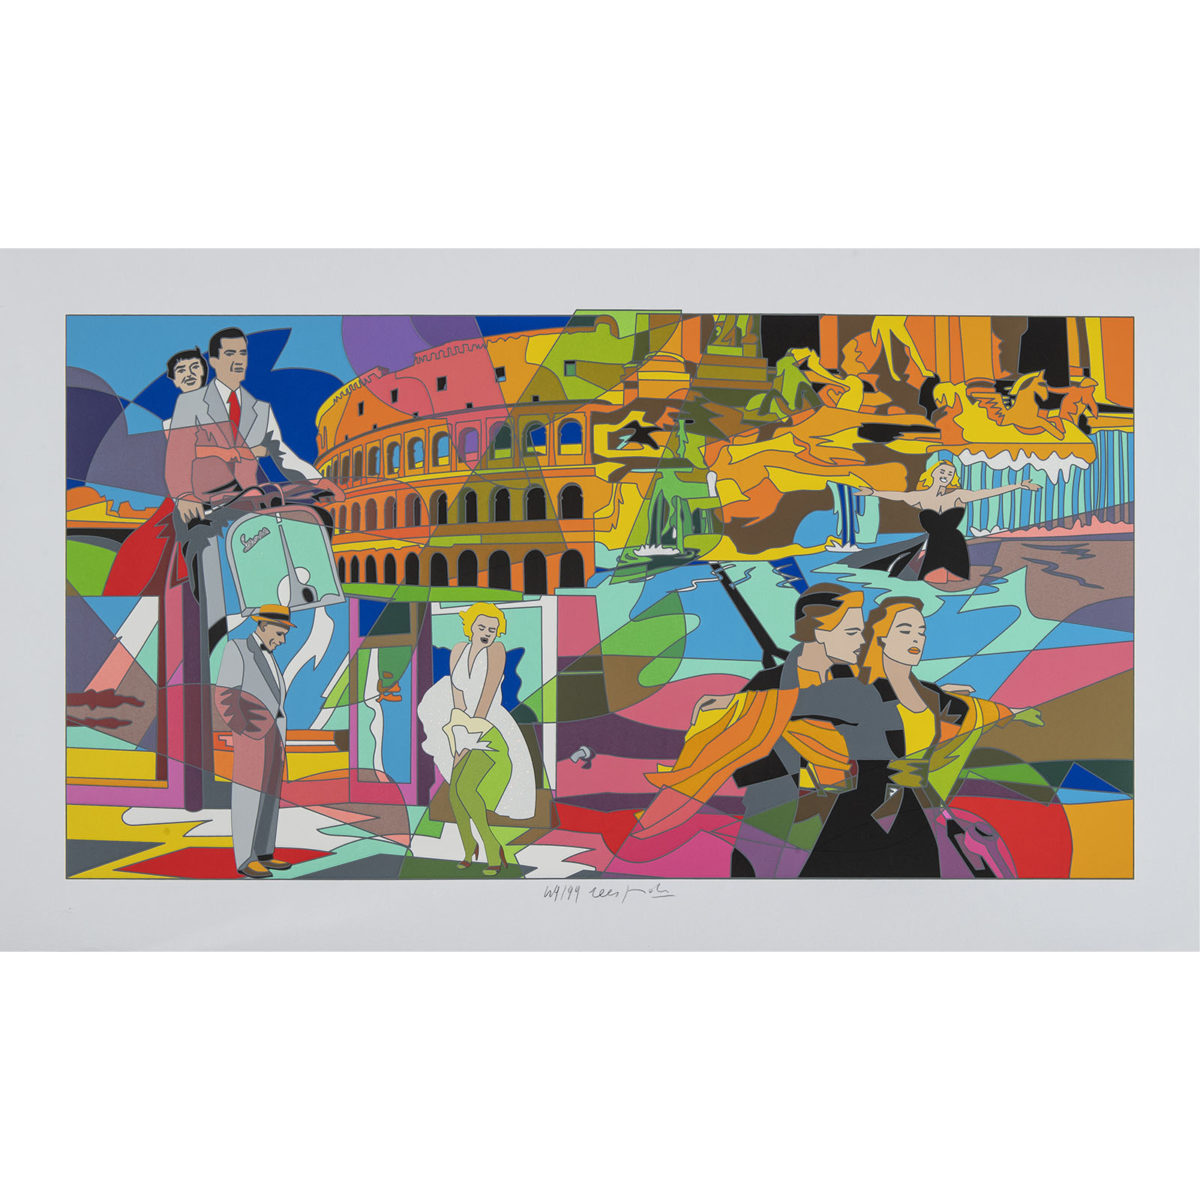 Ugo Nespolo - Movie Time - Serigrafia 70x120cm